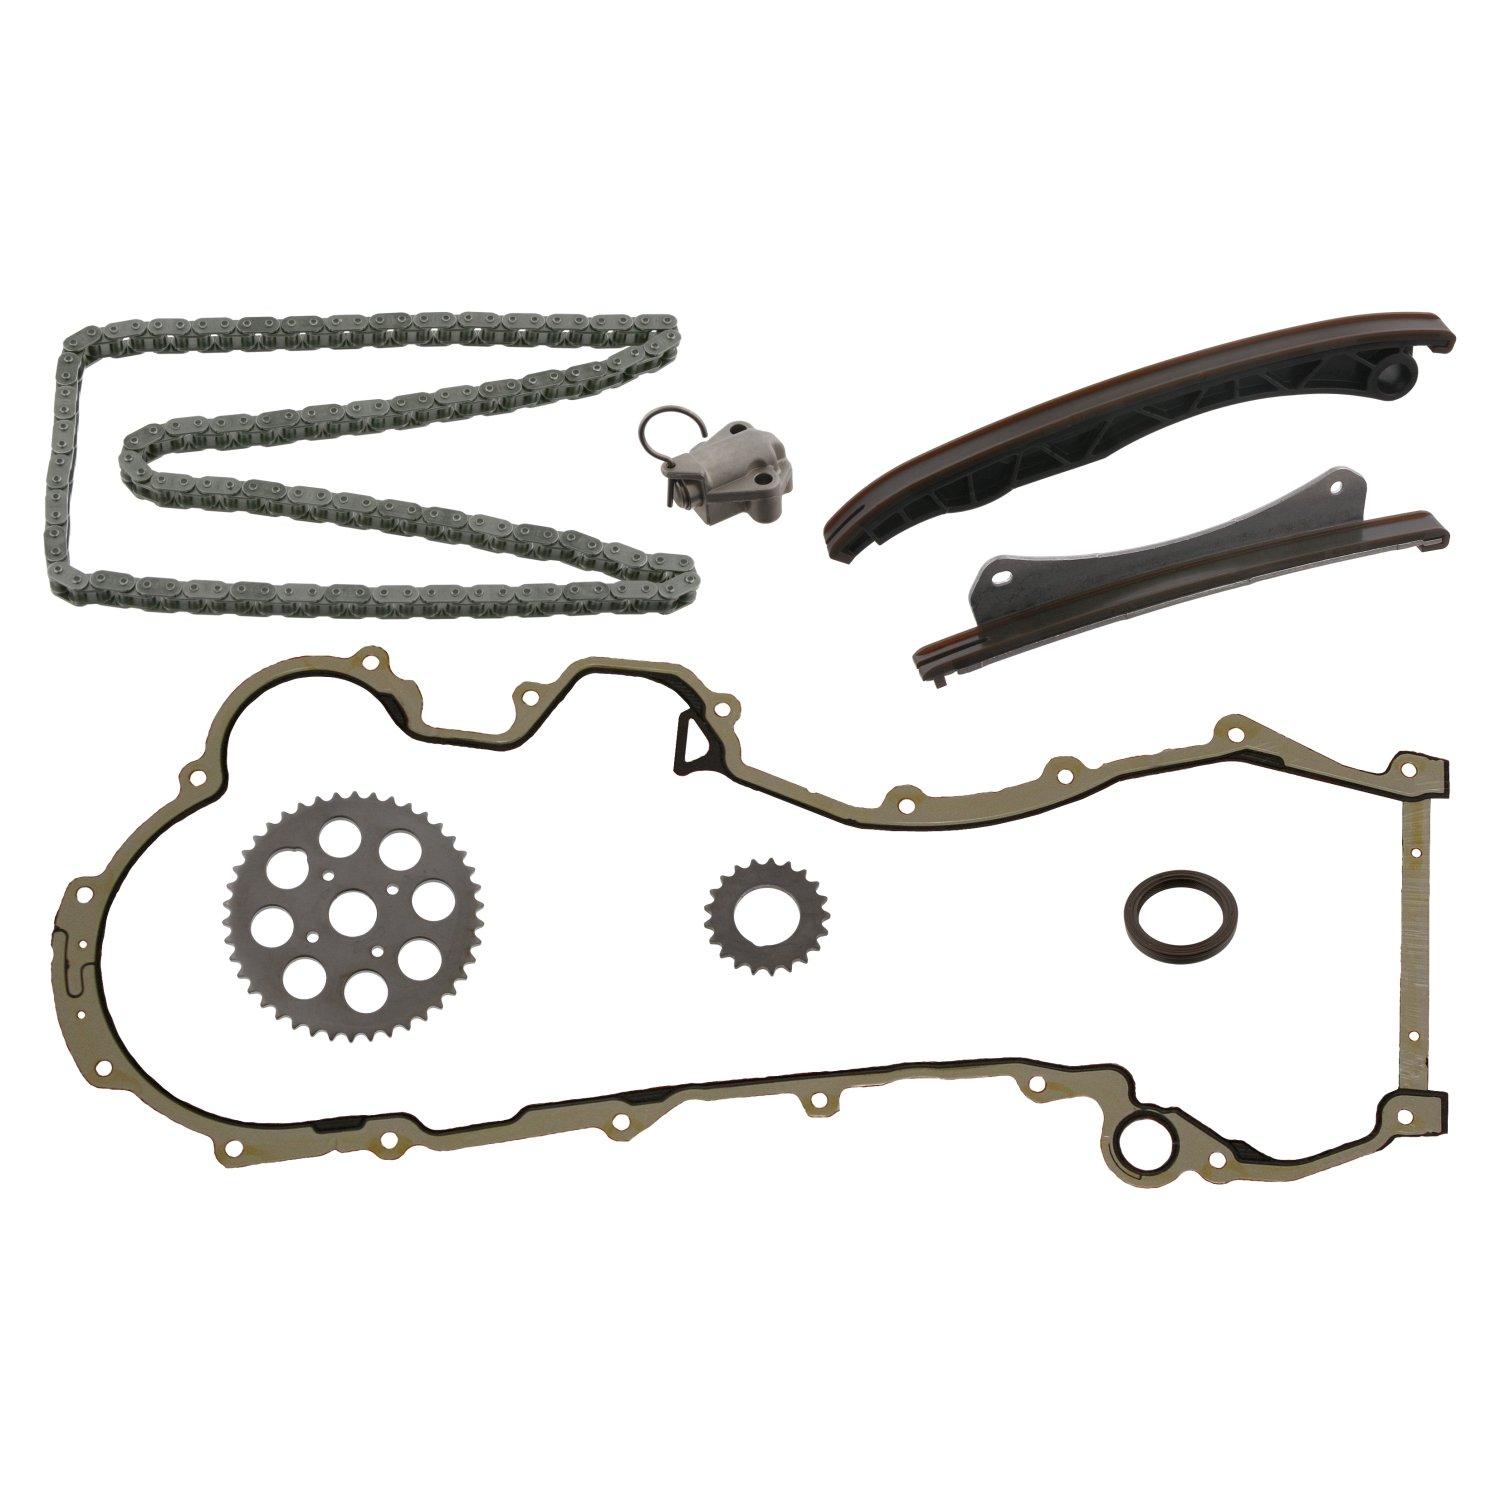 febi bilstein 31622 timing chain kit single, for camshaft  - Pack of 1